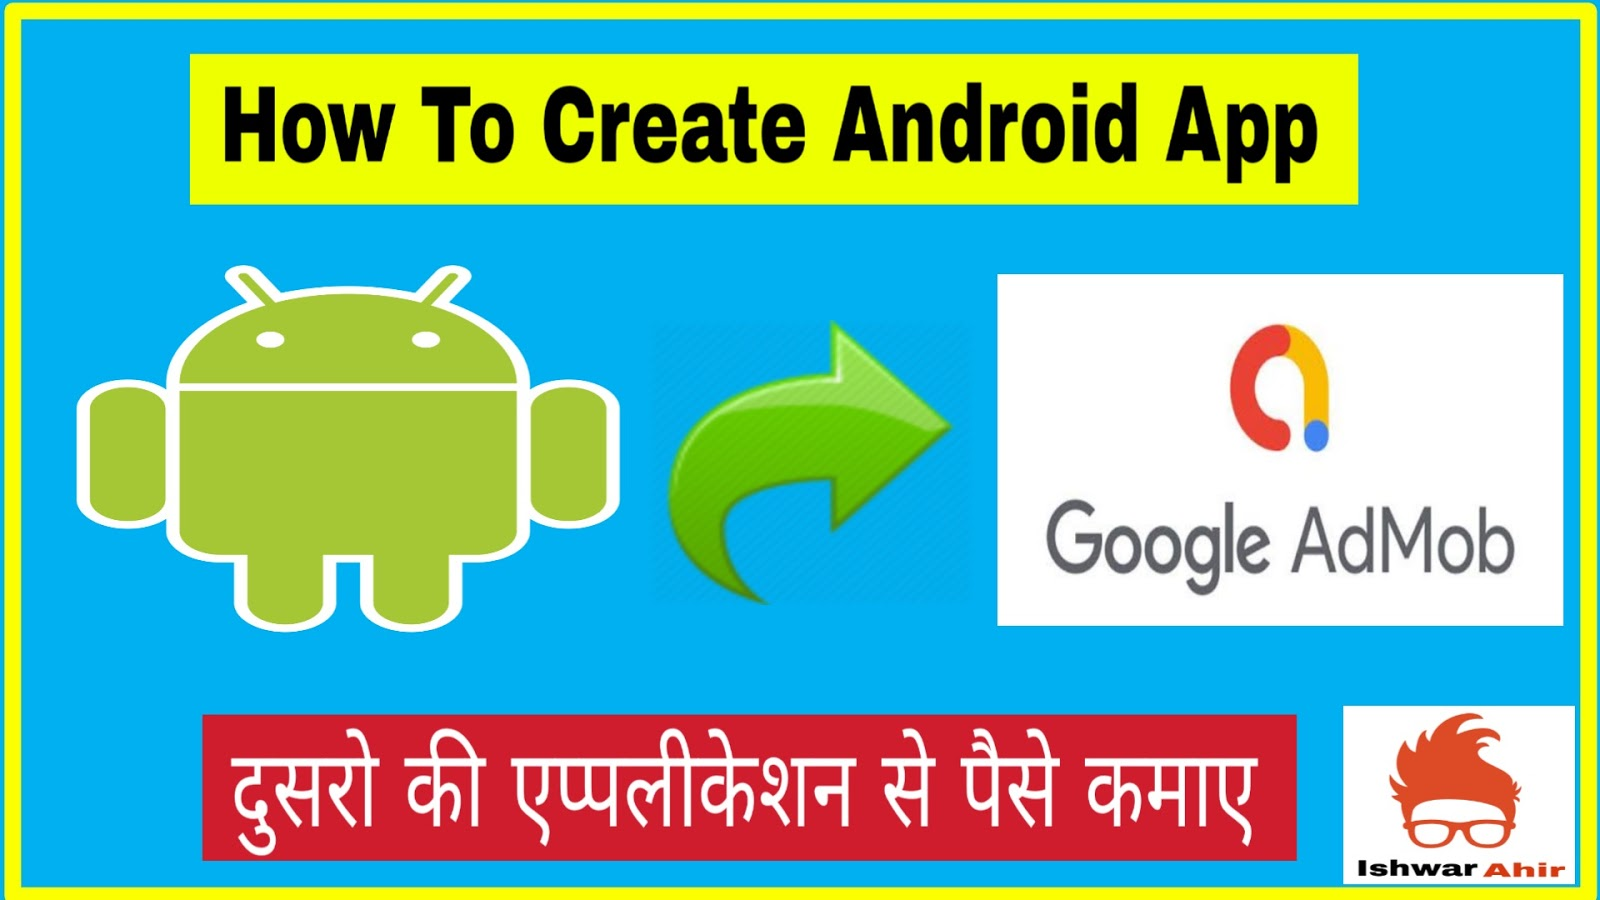 How to Create Android App